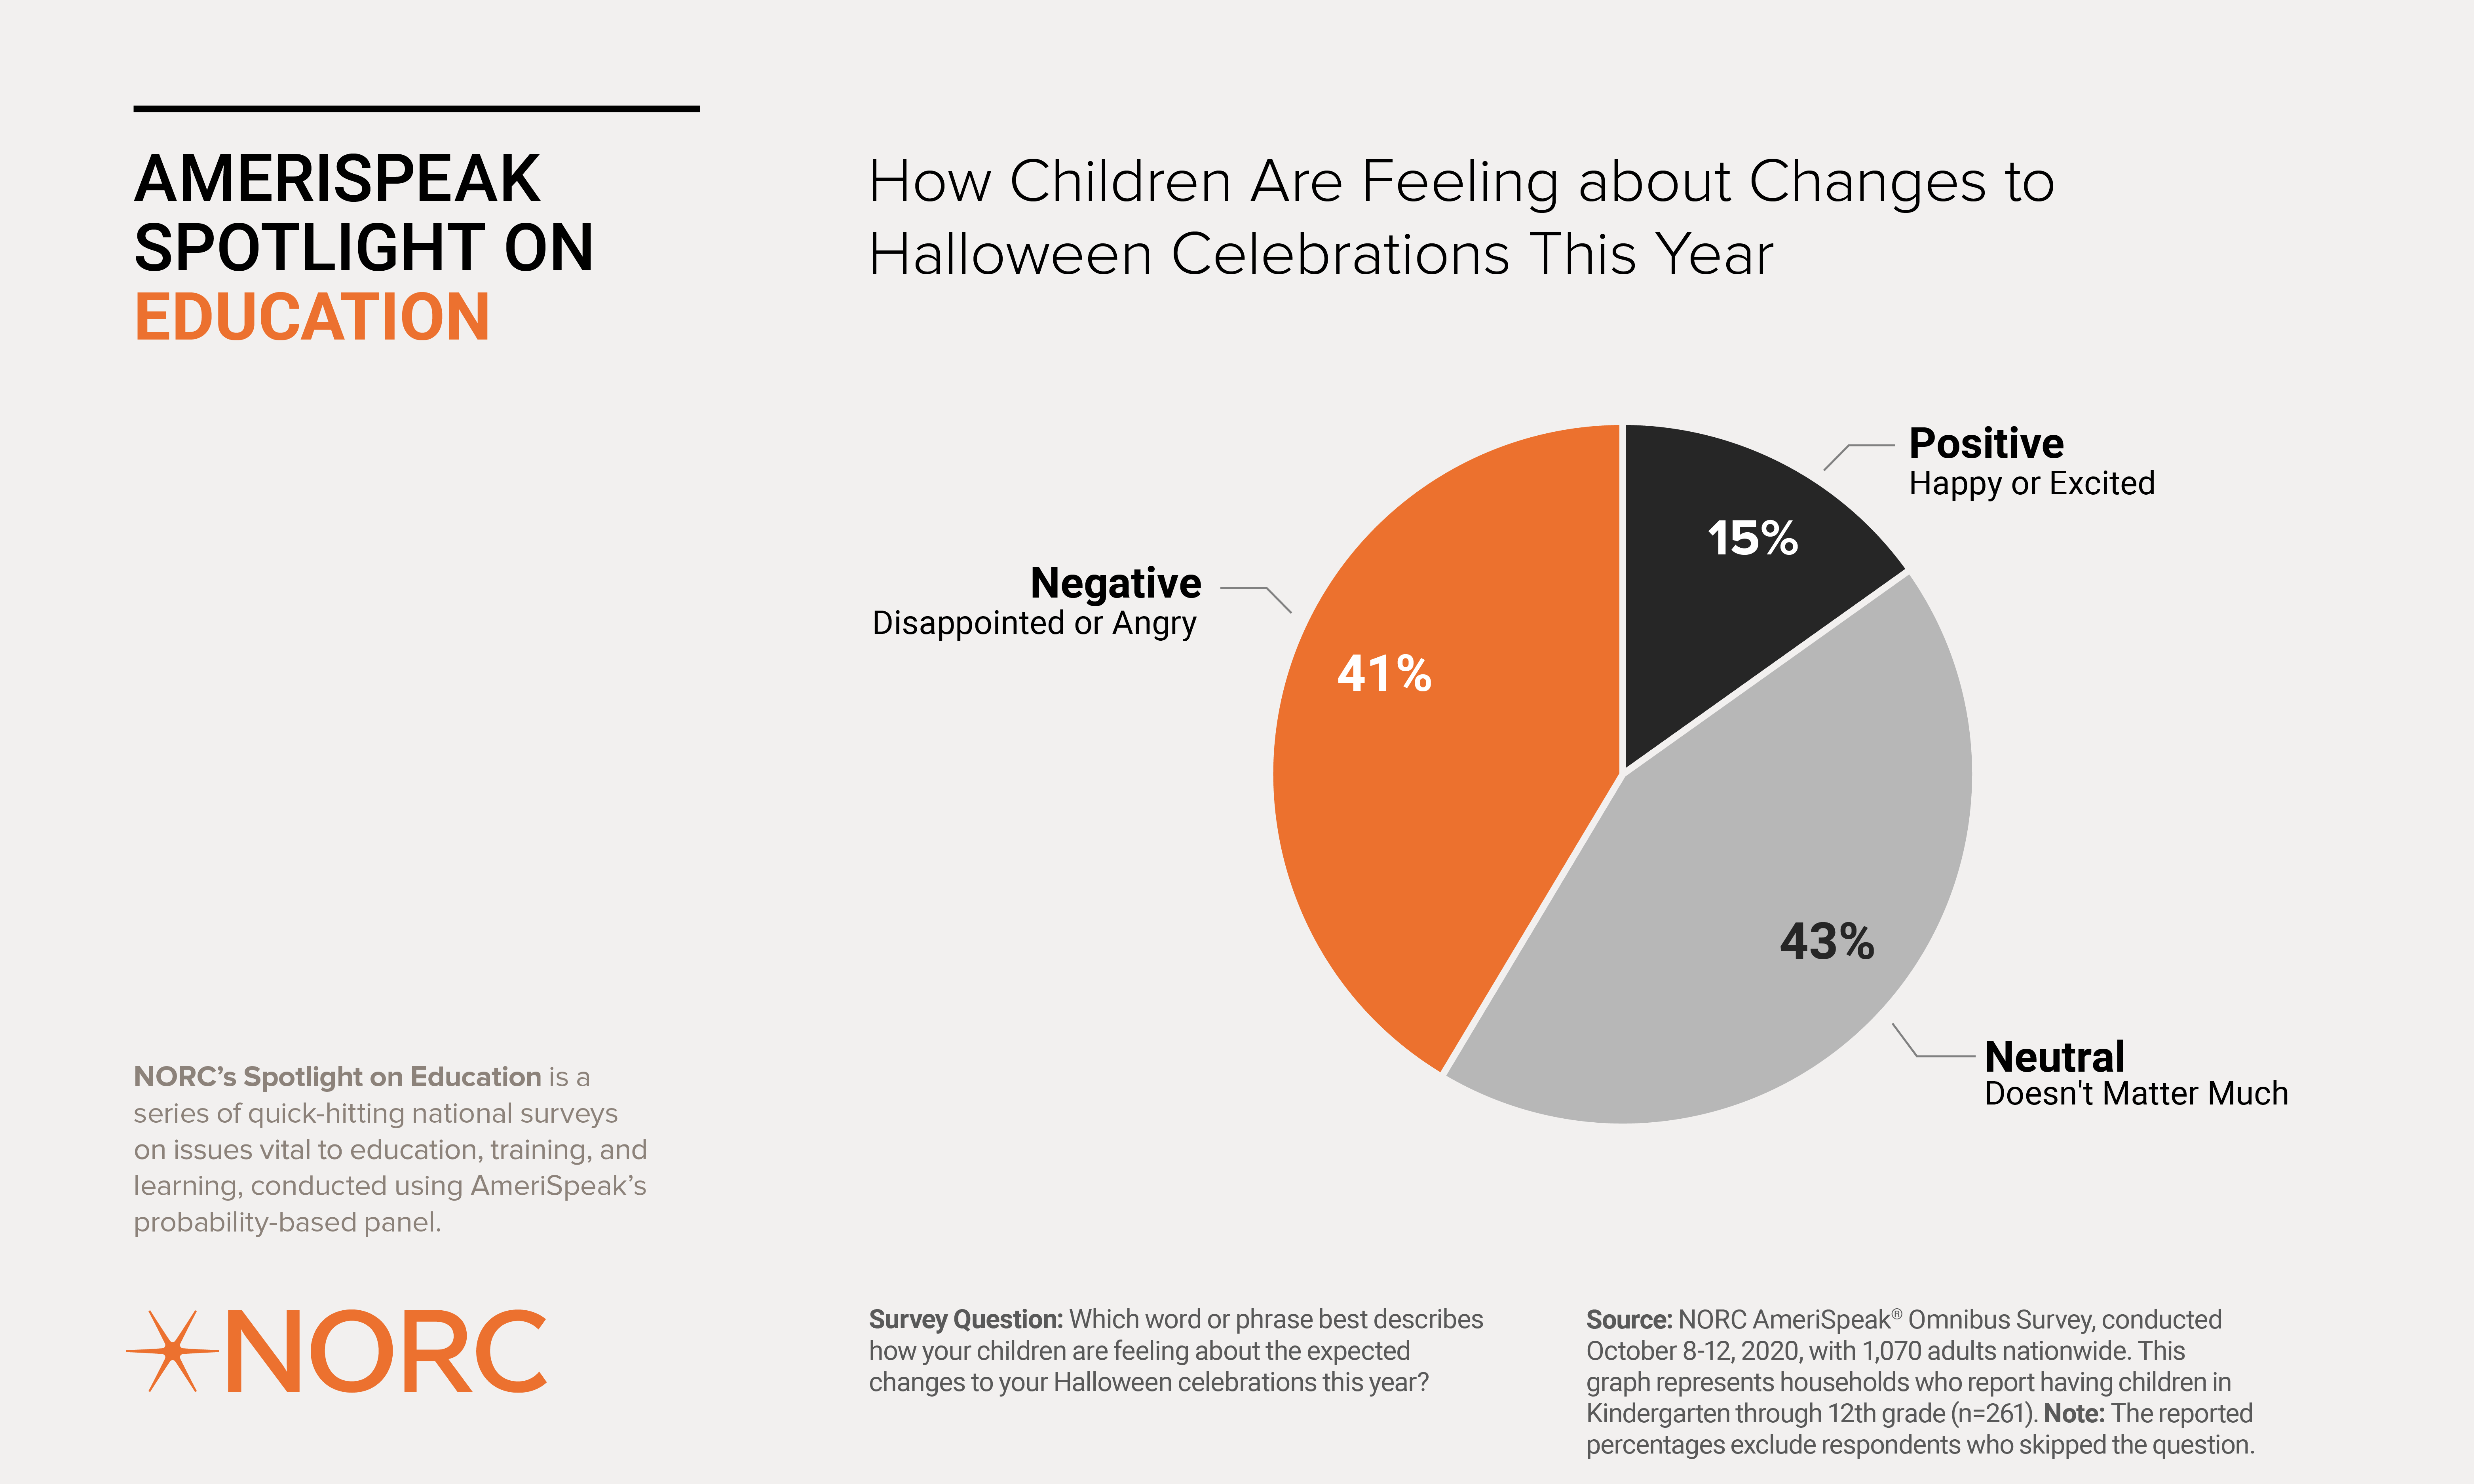 How Children Are Feeling about Changes to Halloween Celebration This Year